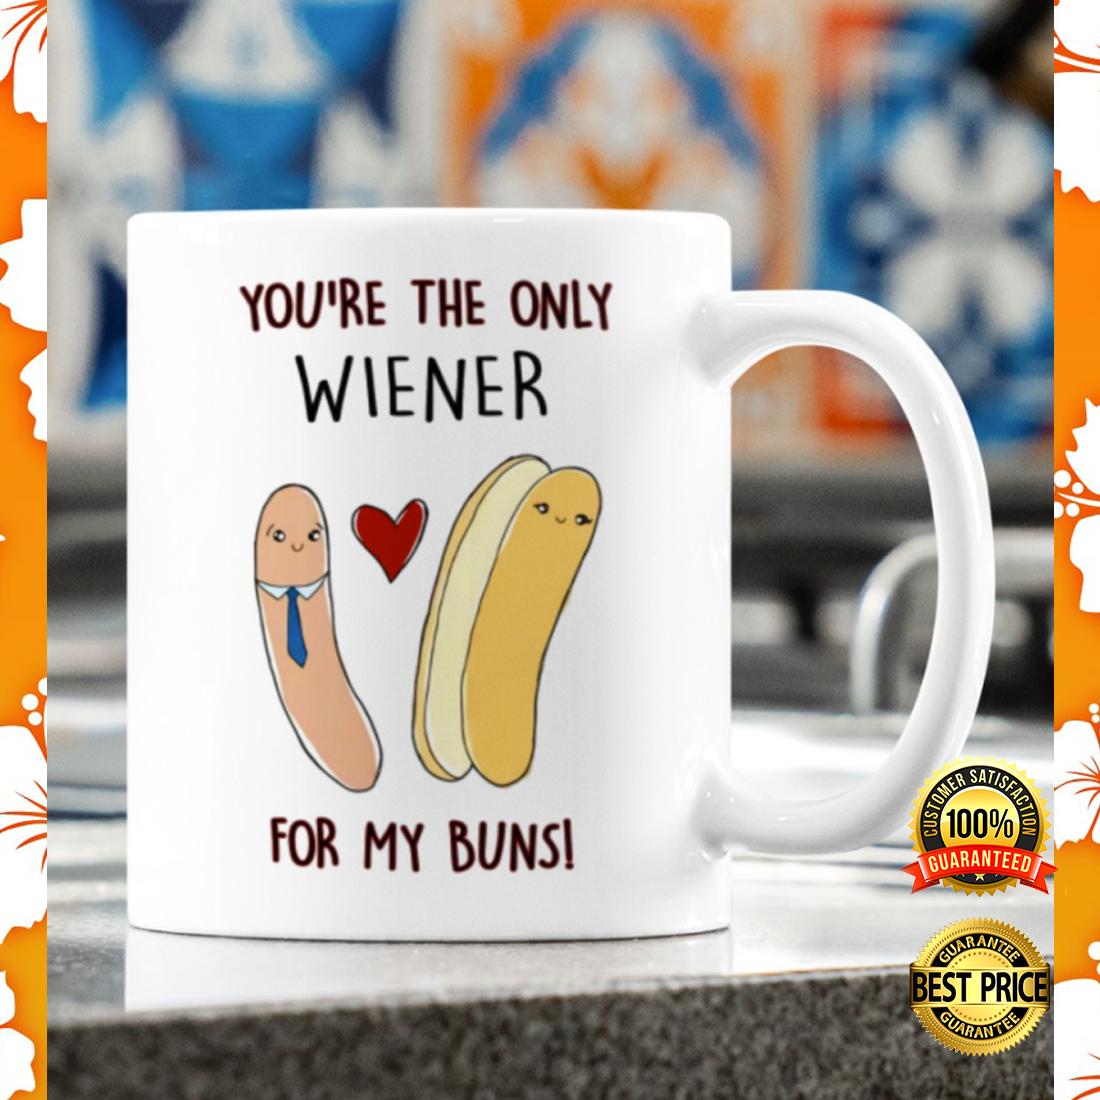 YOU'RE THE ONLY WIENER FOR MY BUNS MUG 5